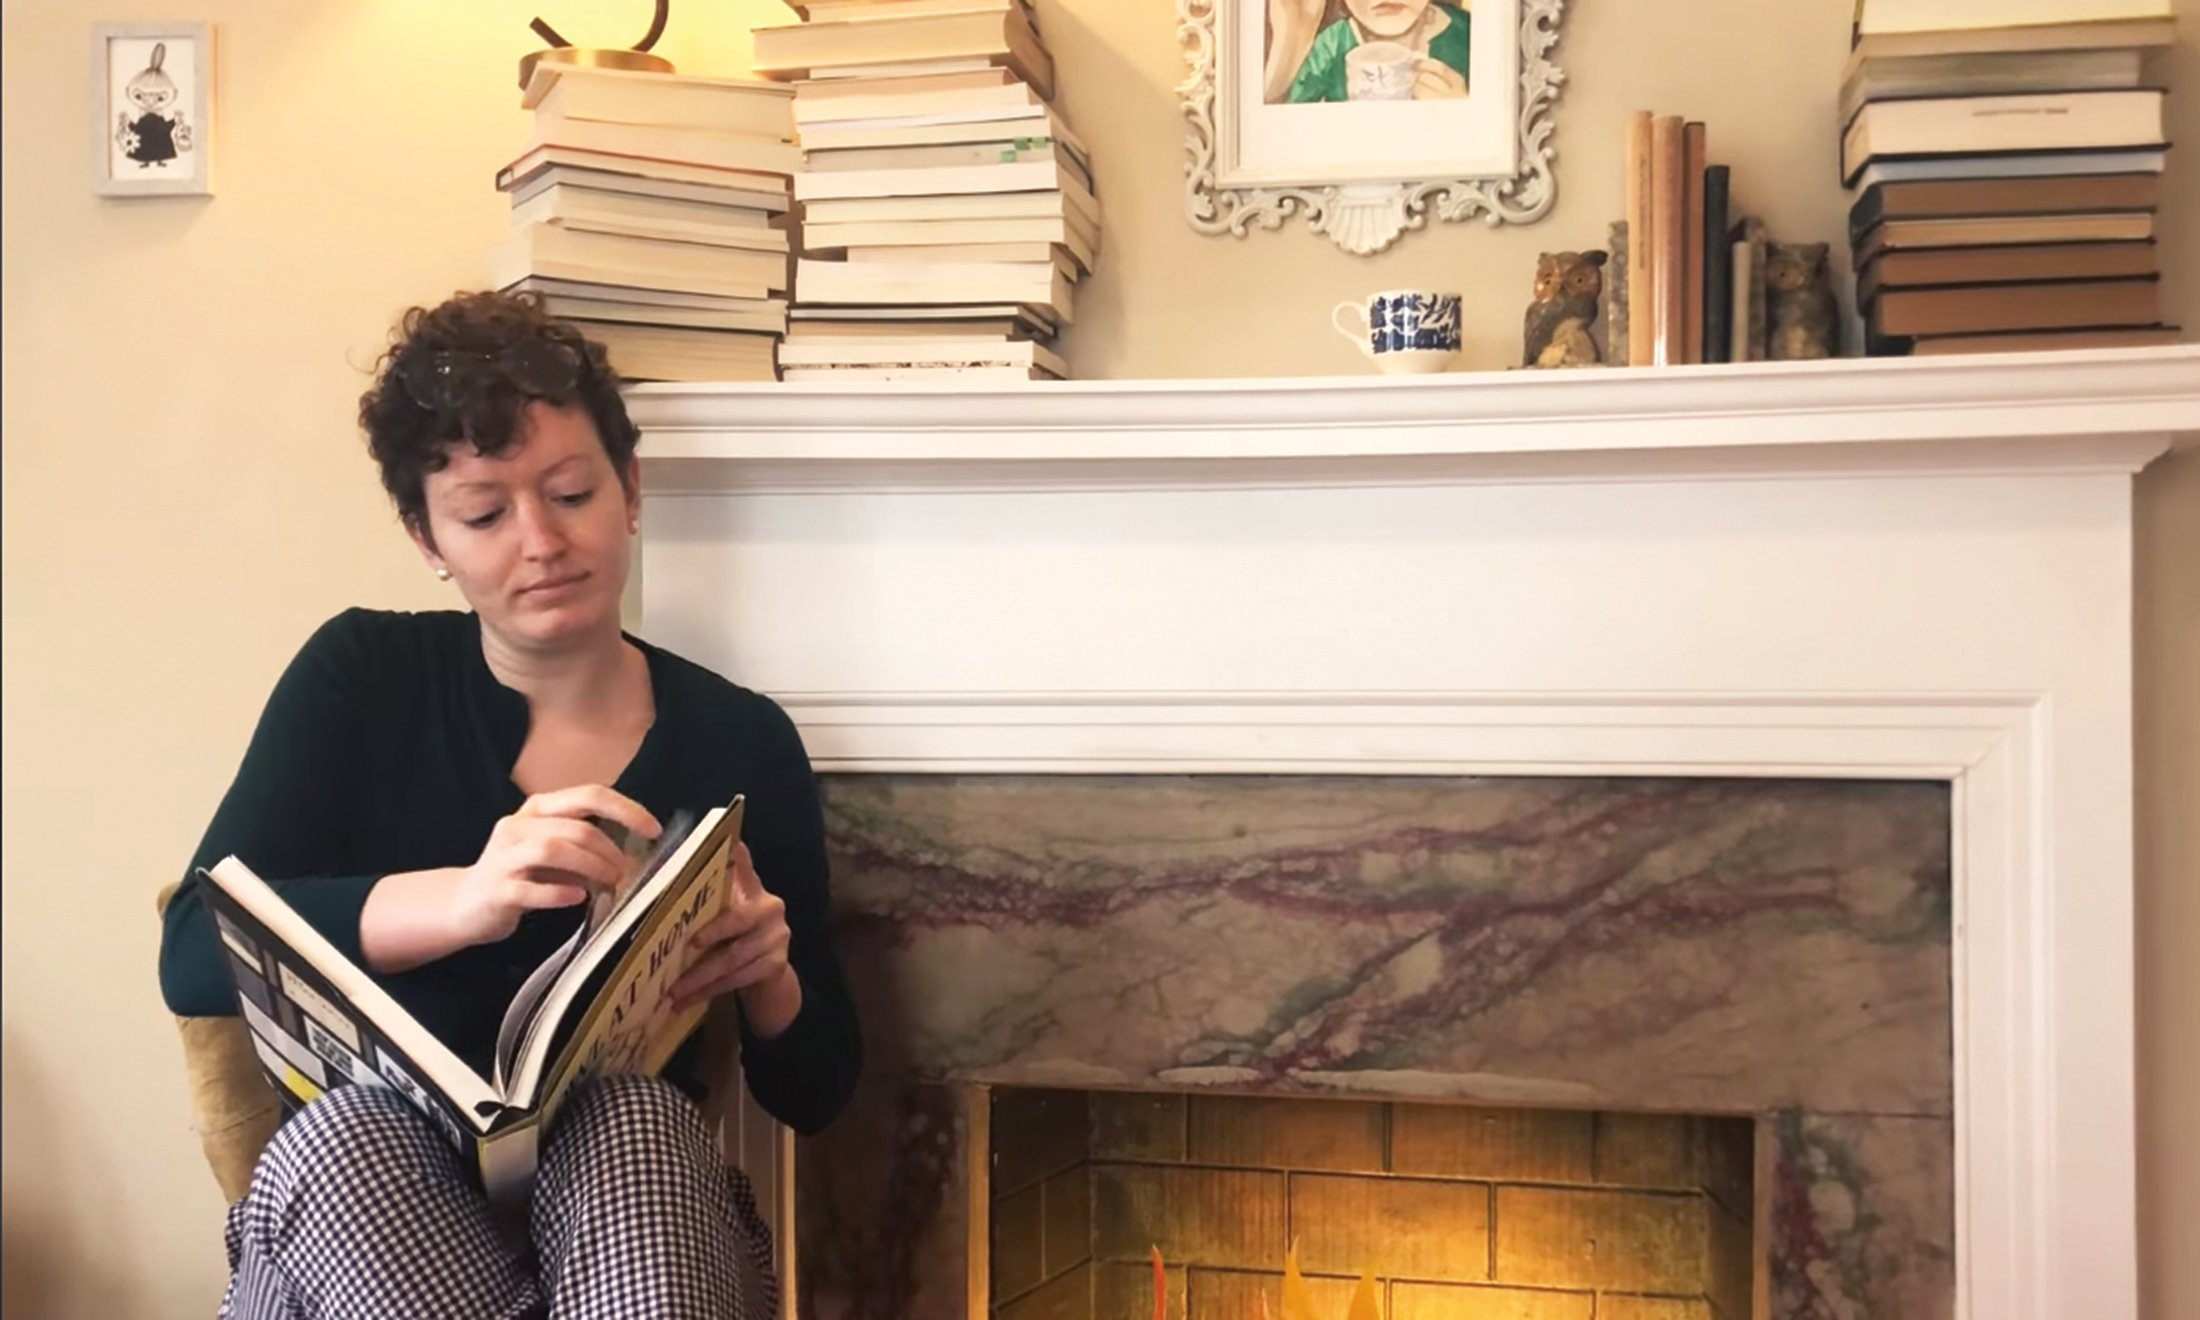 A woman reading.